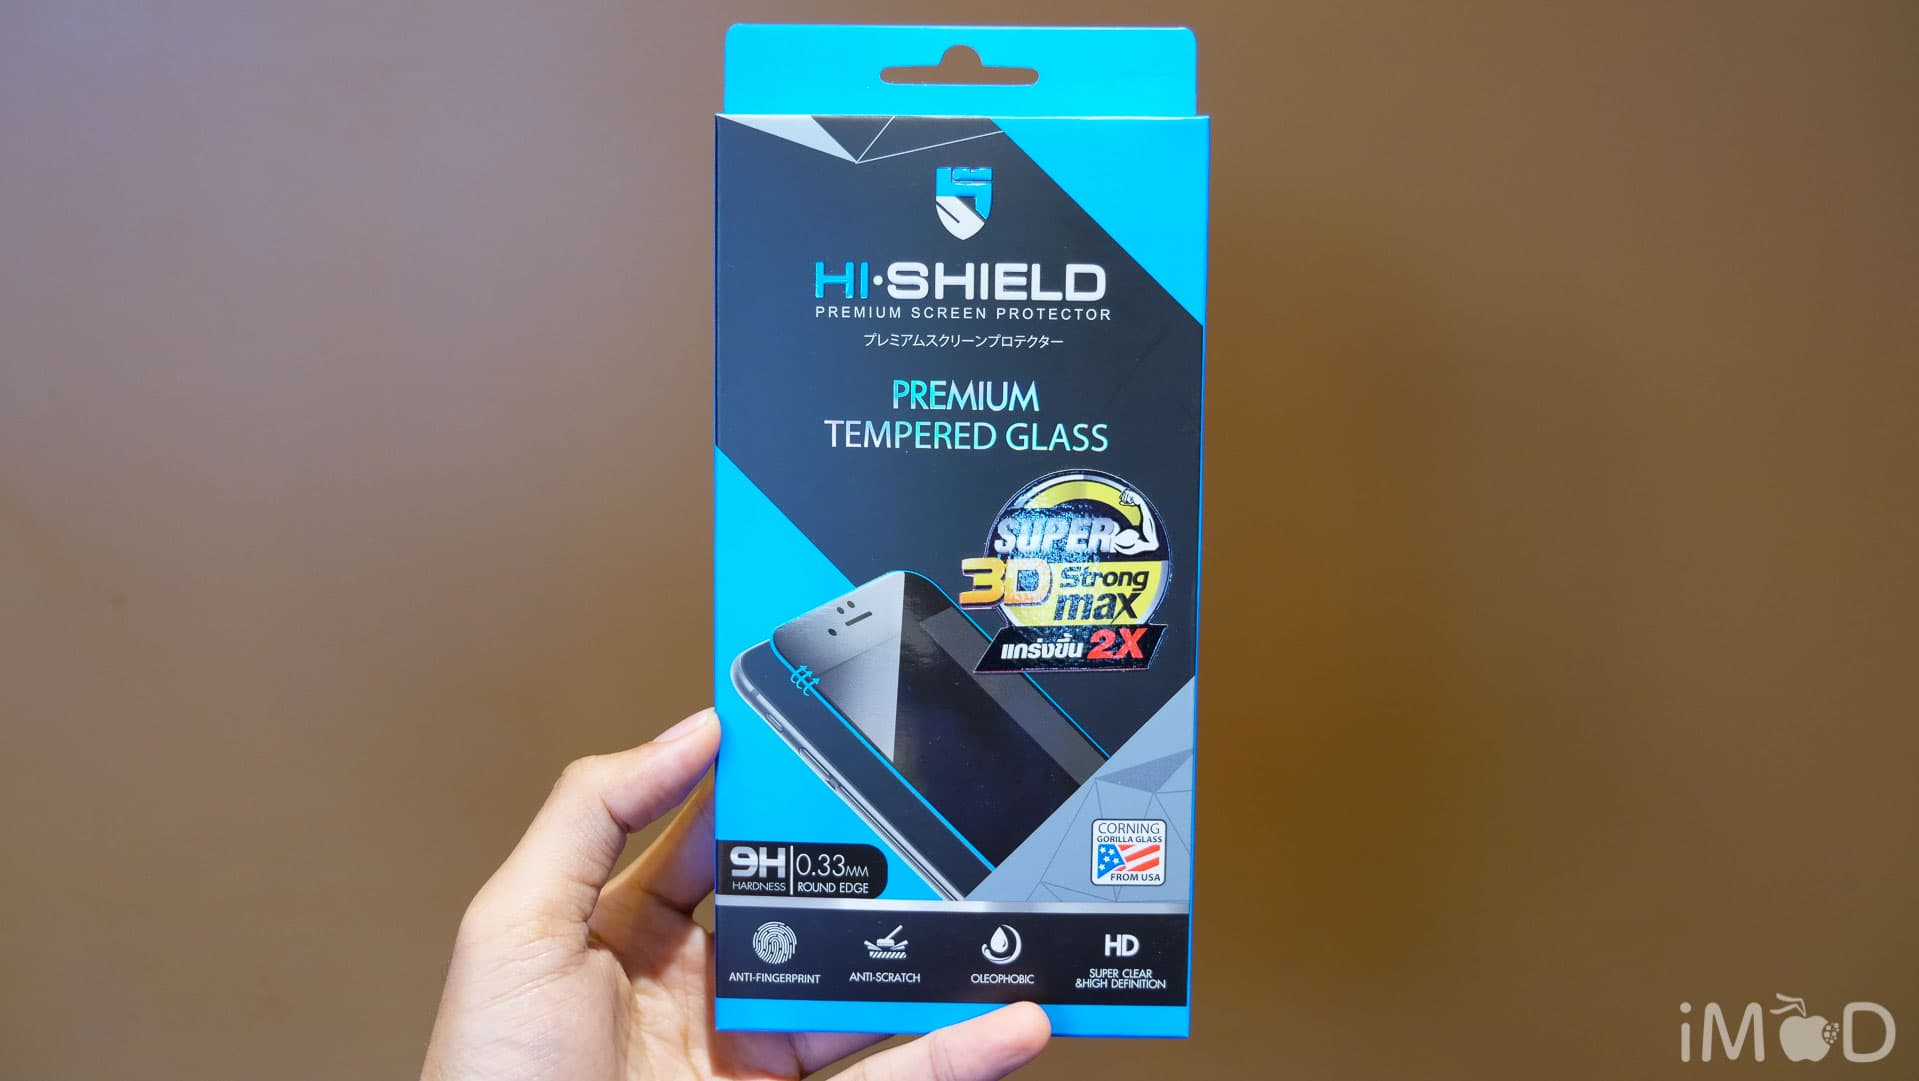 Hi Shield Iphone X 3d Super Strong Max V2 7861